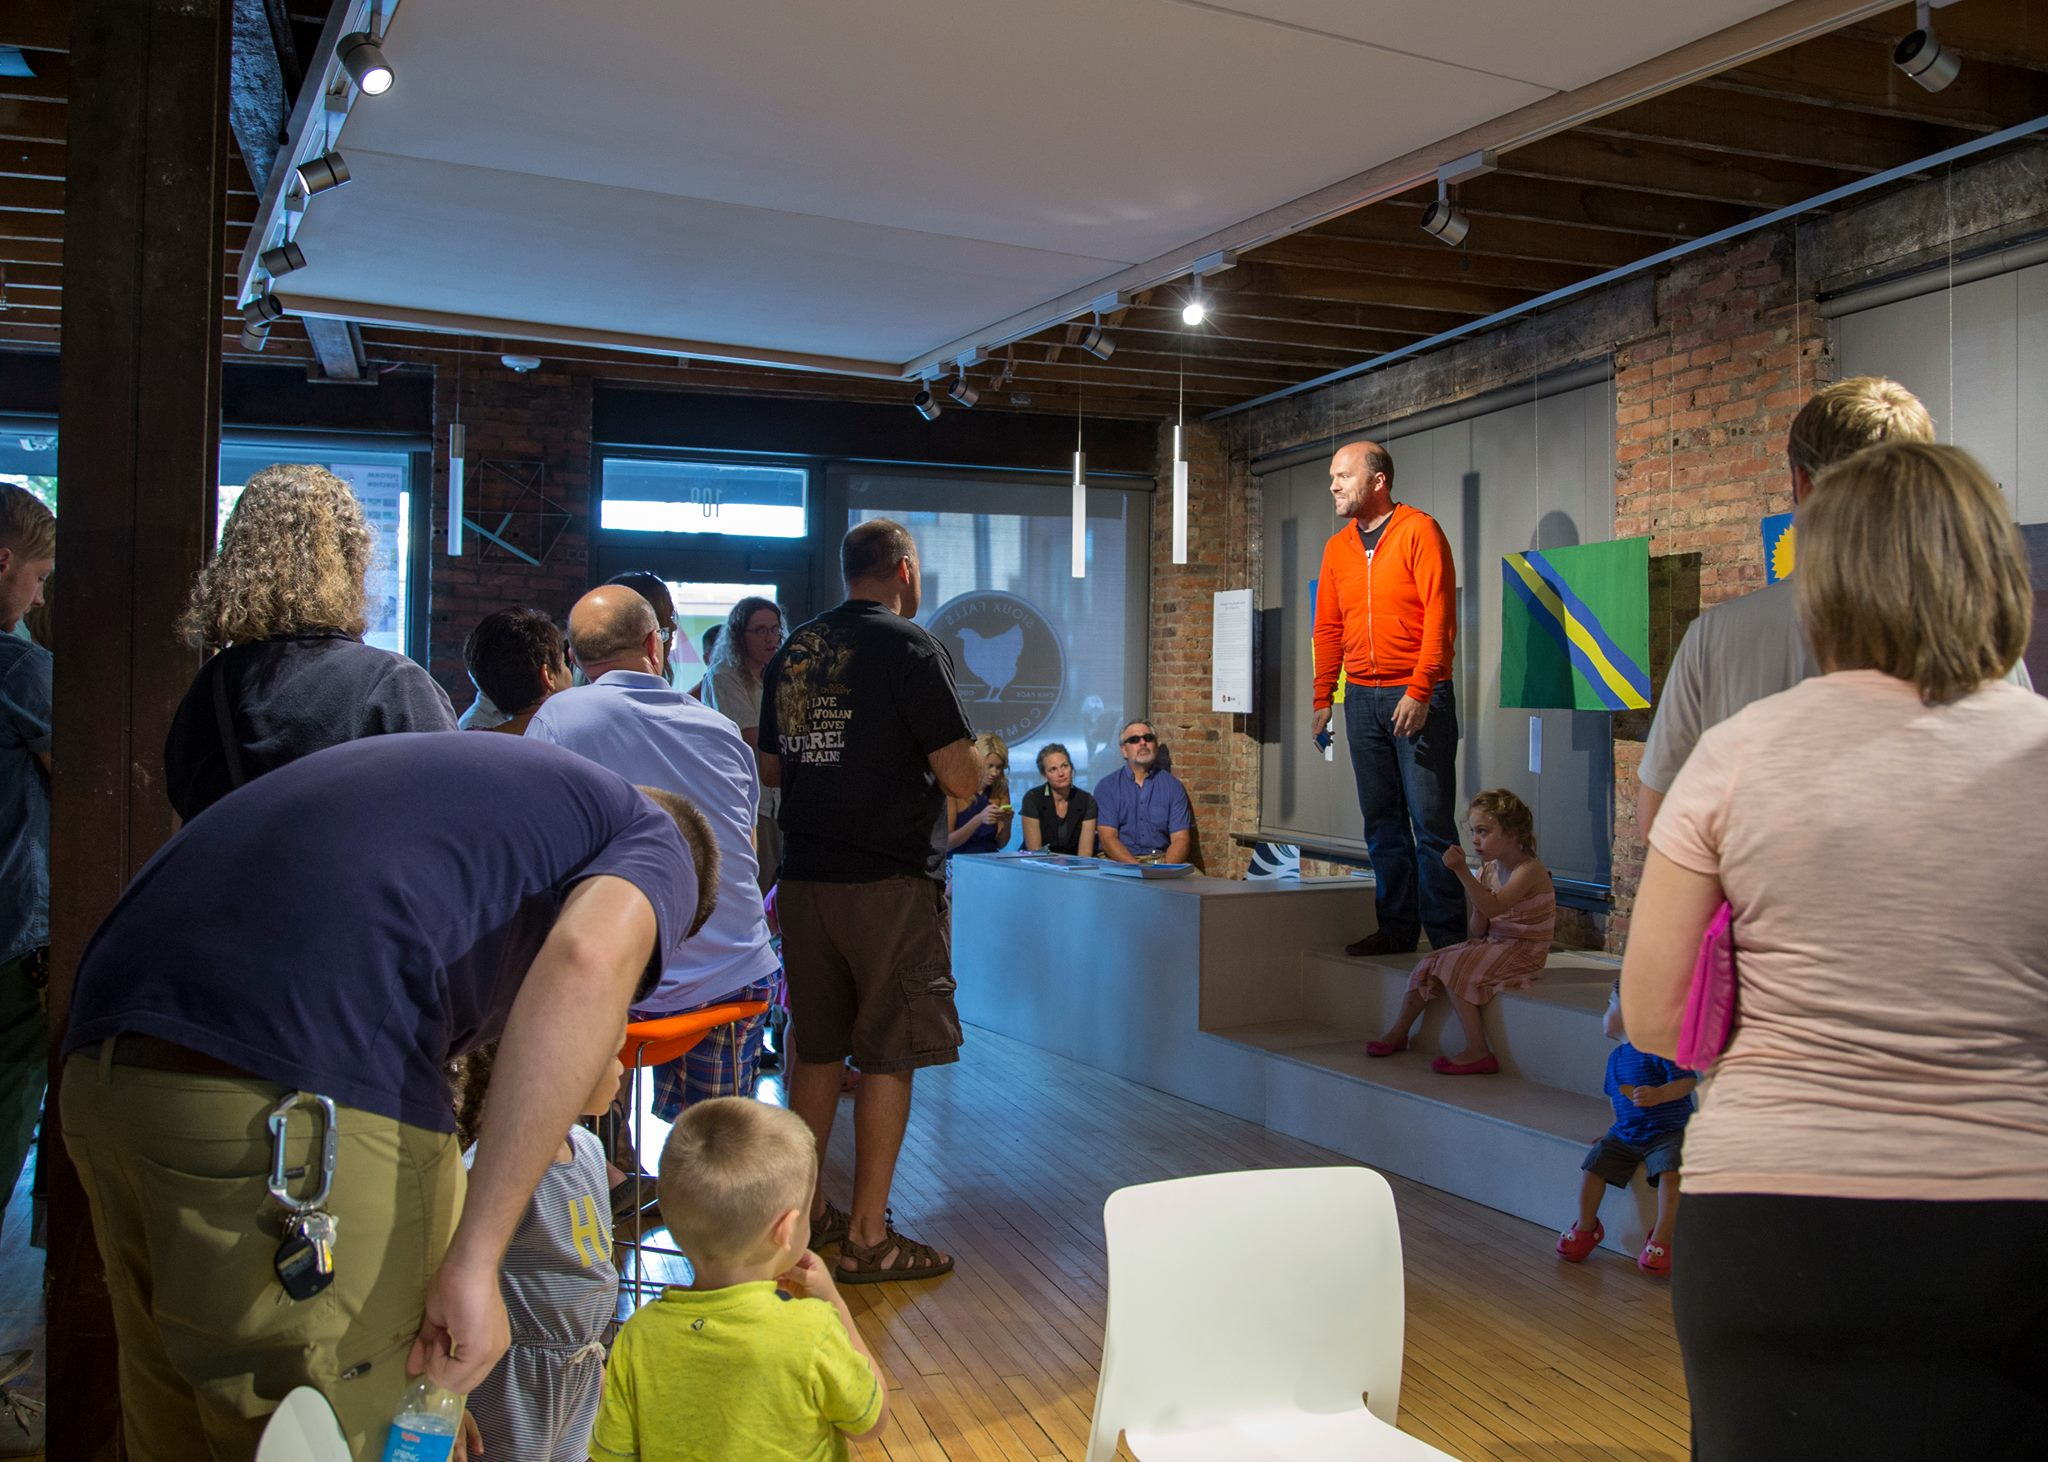 The Community of Sioux Falls reviews the Top 6 flags at the Sioux Falls Design Center gallery showing in August 2014.